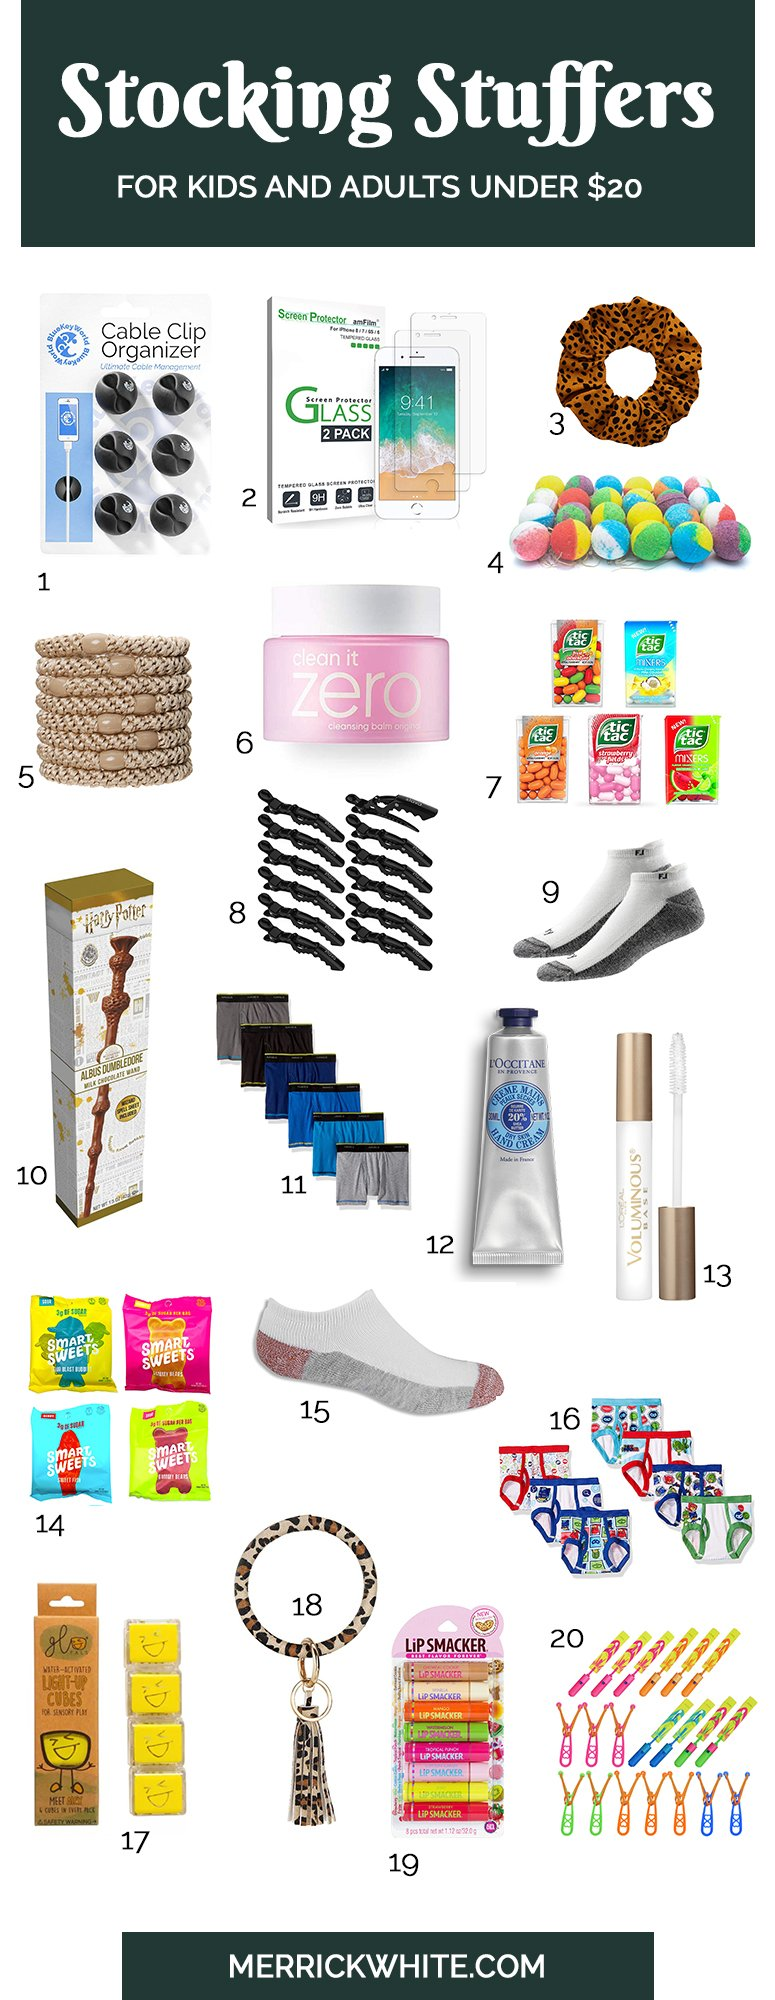 collage of stocking stuffer ideas